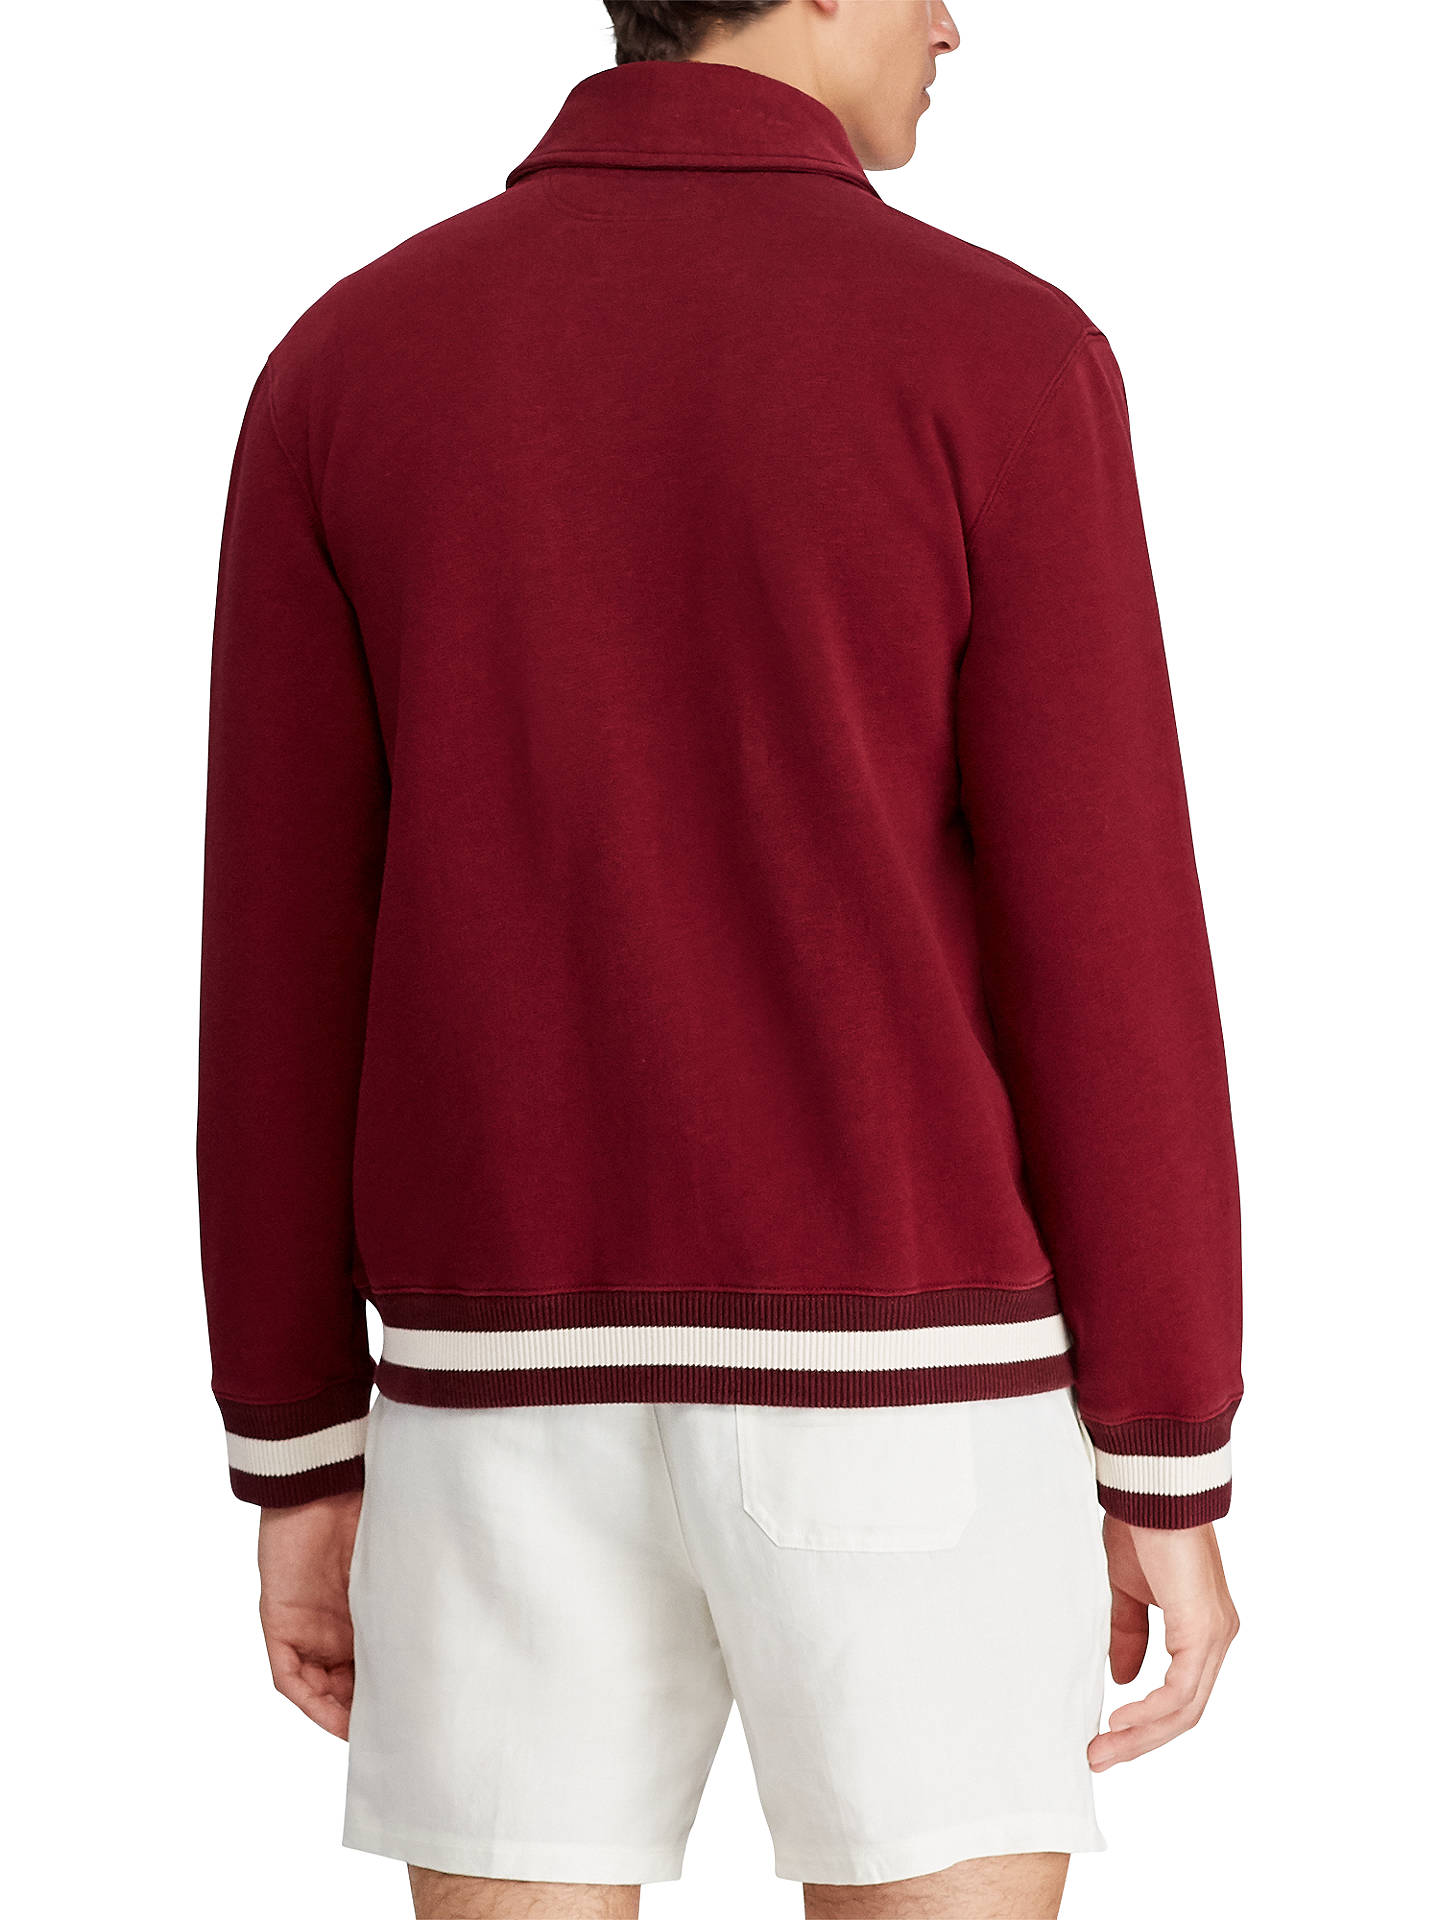 BuyPolo Ralph Lauren Long Sleeve Knitted Sweatshirt, Red, M Online at johnlewis.com